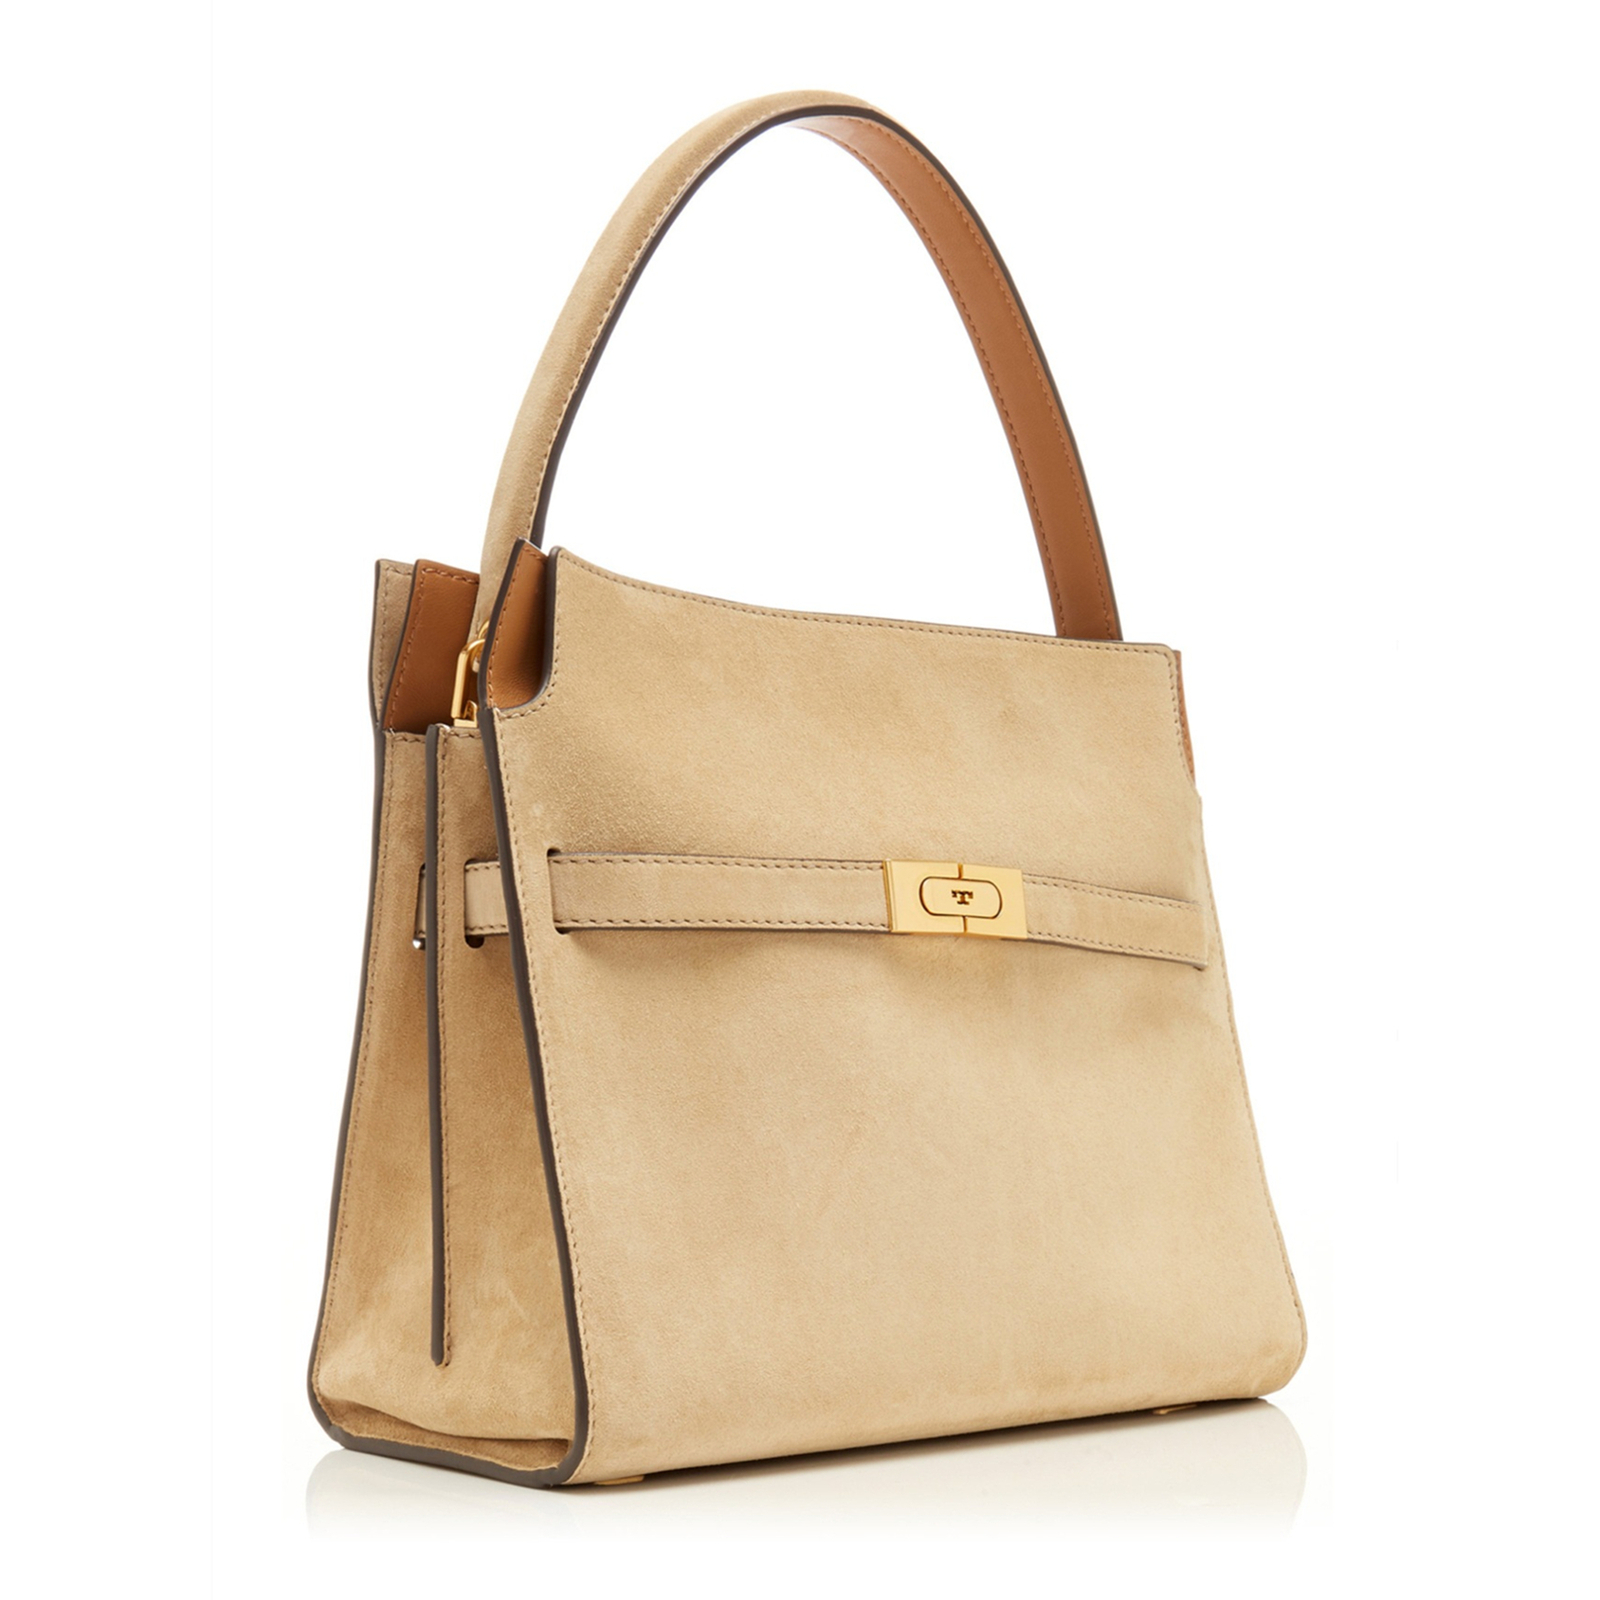 Primary image for Tory Burch Lee Radziwill Small Double Bag